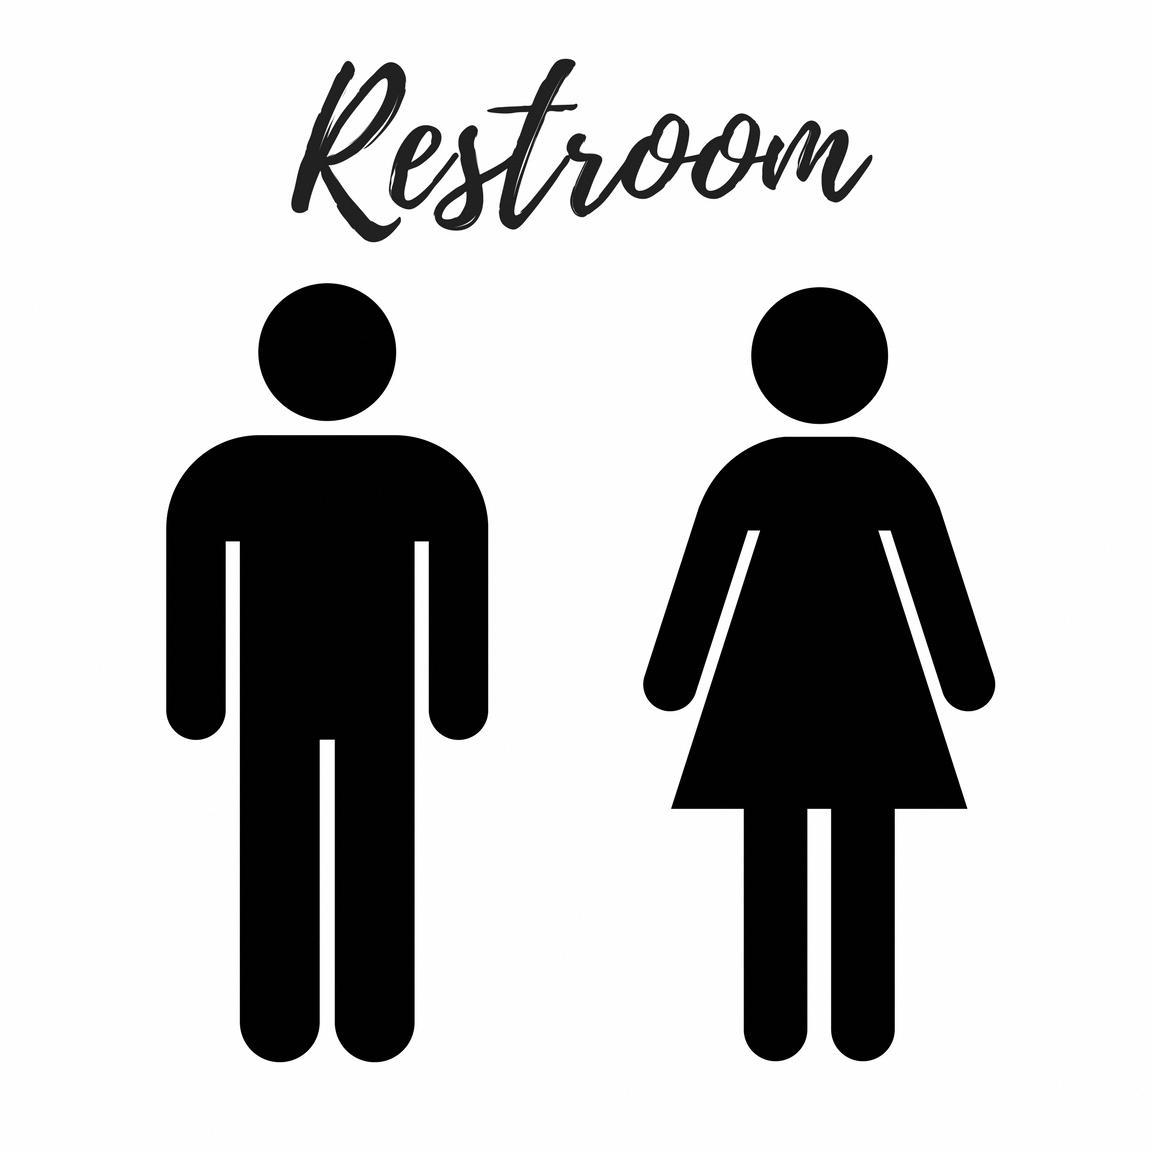 Check Out This Crucial Graphic In Order To Look At The Provided Points On Cheap Bathroom In 2020 Bathroom Printables Free Bathroom Printables Printable Bathroom Signs